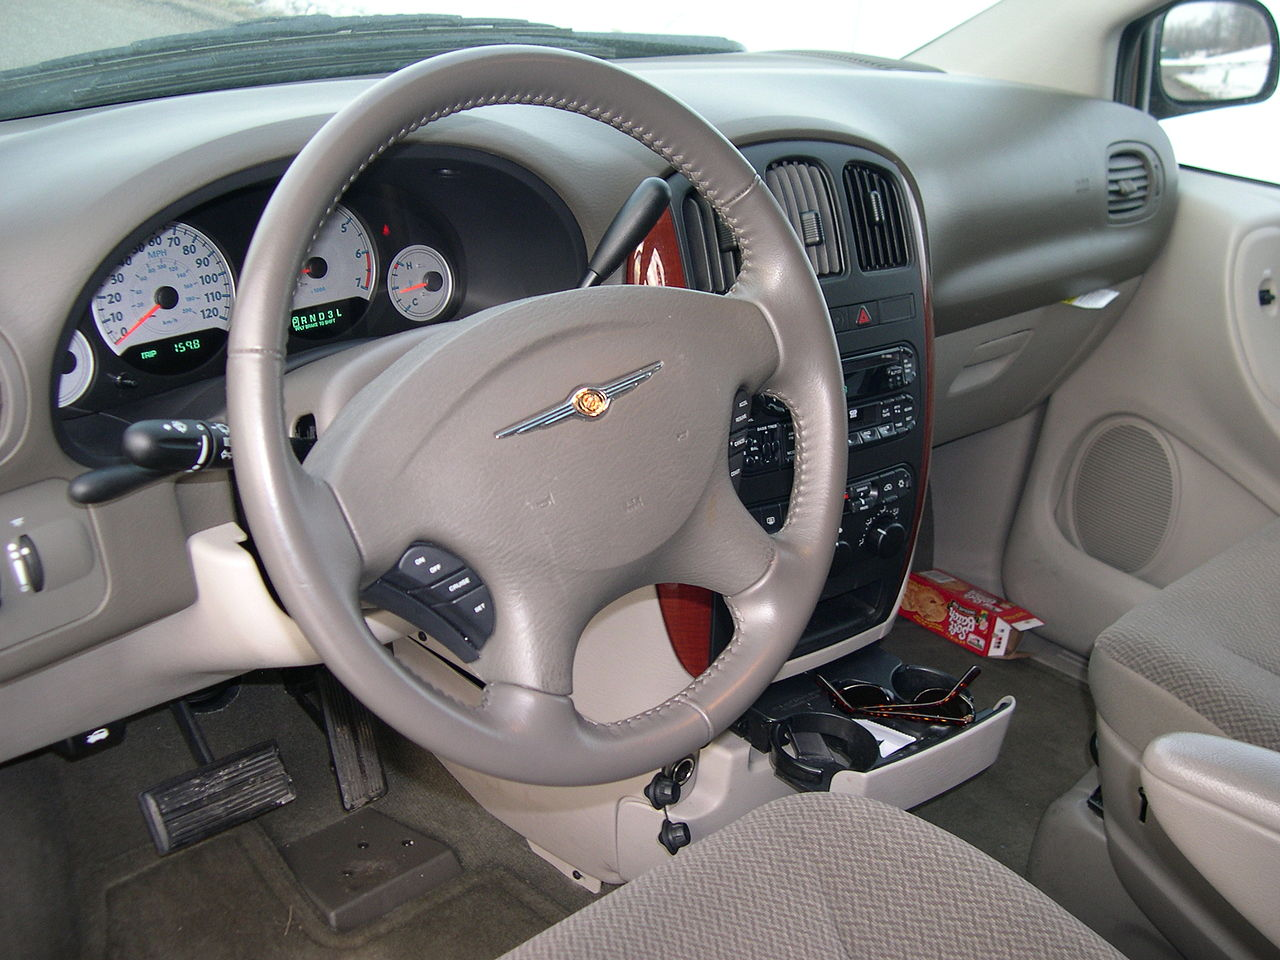 file 2005 chrysler town and country lx interior jpg wikimedia commons. Black Bedroom Furniture Sets. Home Design Ideas